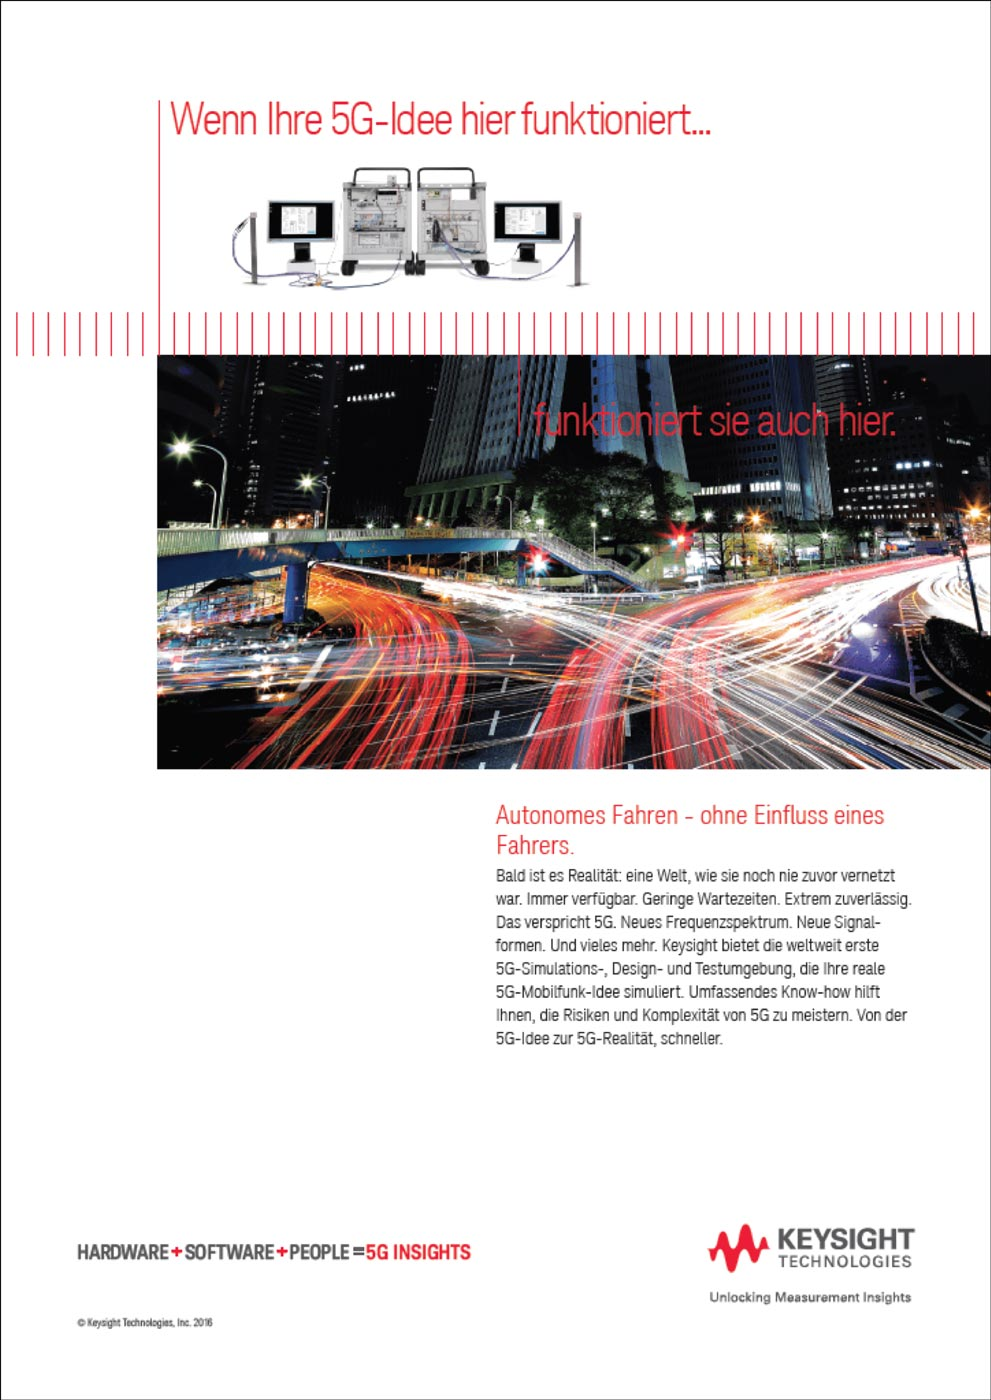 Ad Campaign Case Study   Keysight Technologies Ads for Engineers